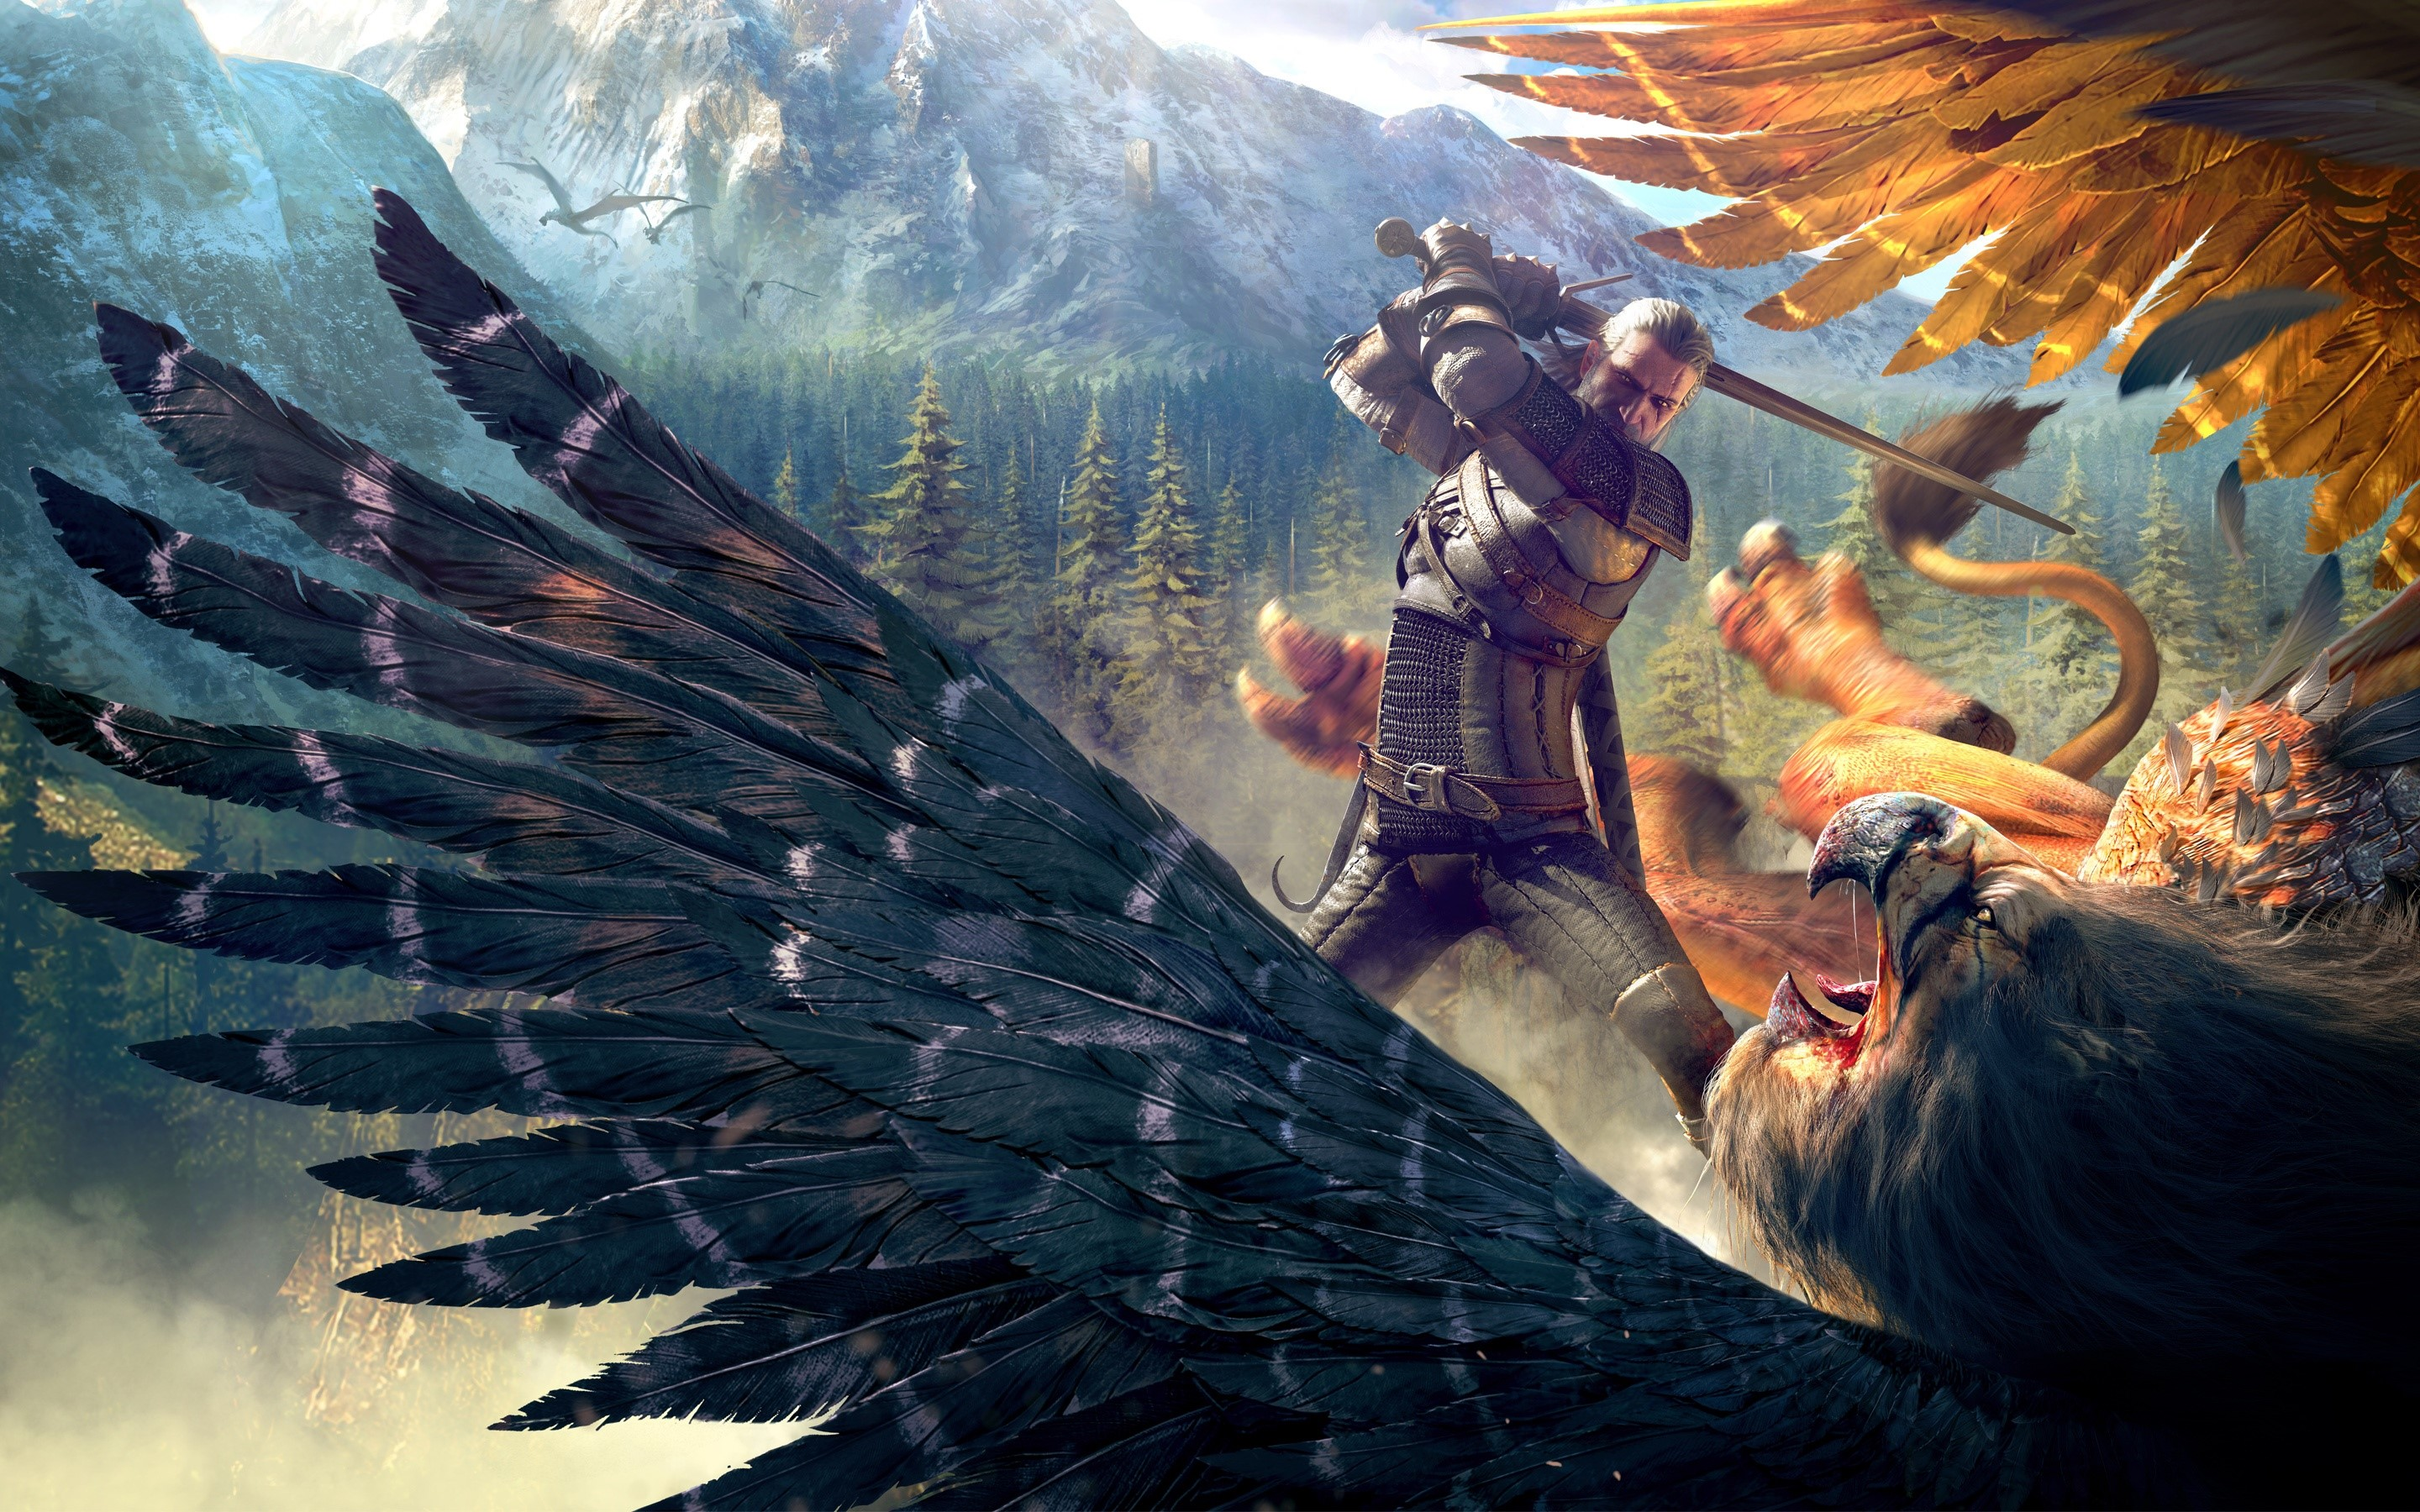 Wallpaper Gameplay of The Witcher 3 Wild Hunt